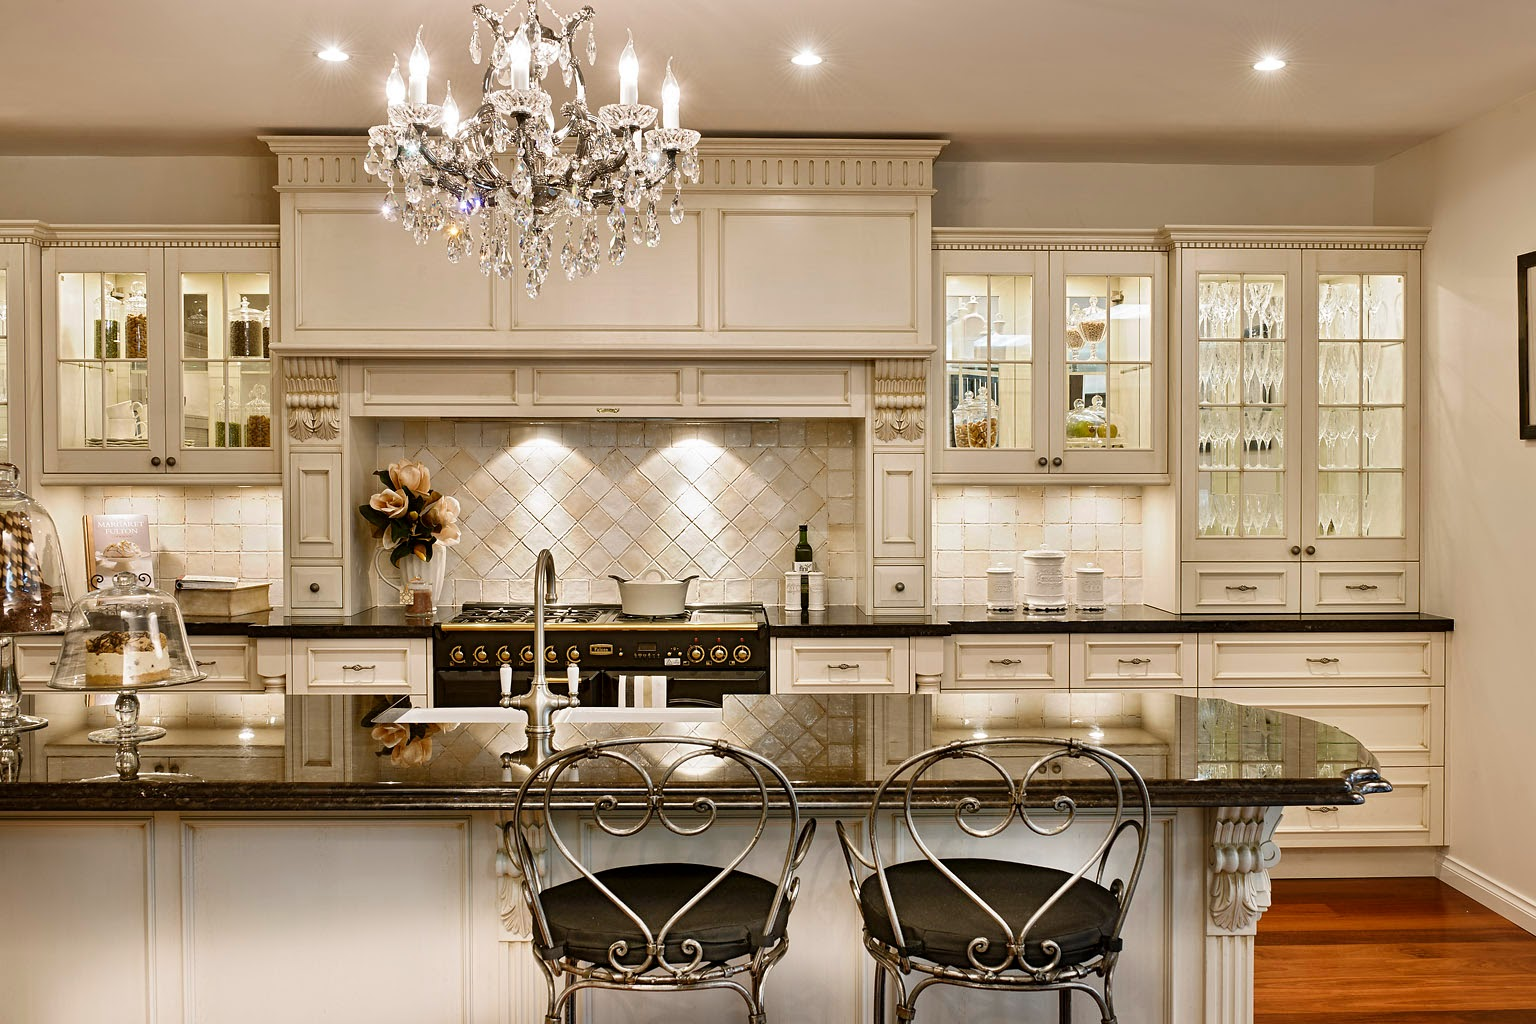 French Country Kitchen French Country Kitchen With White Cabinets  Interior & Exterior Doors